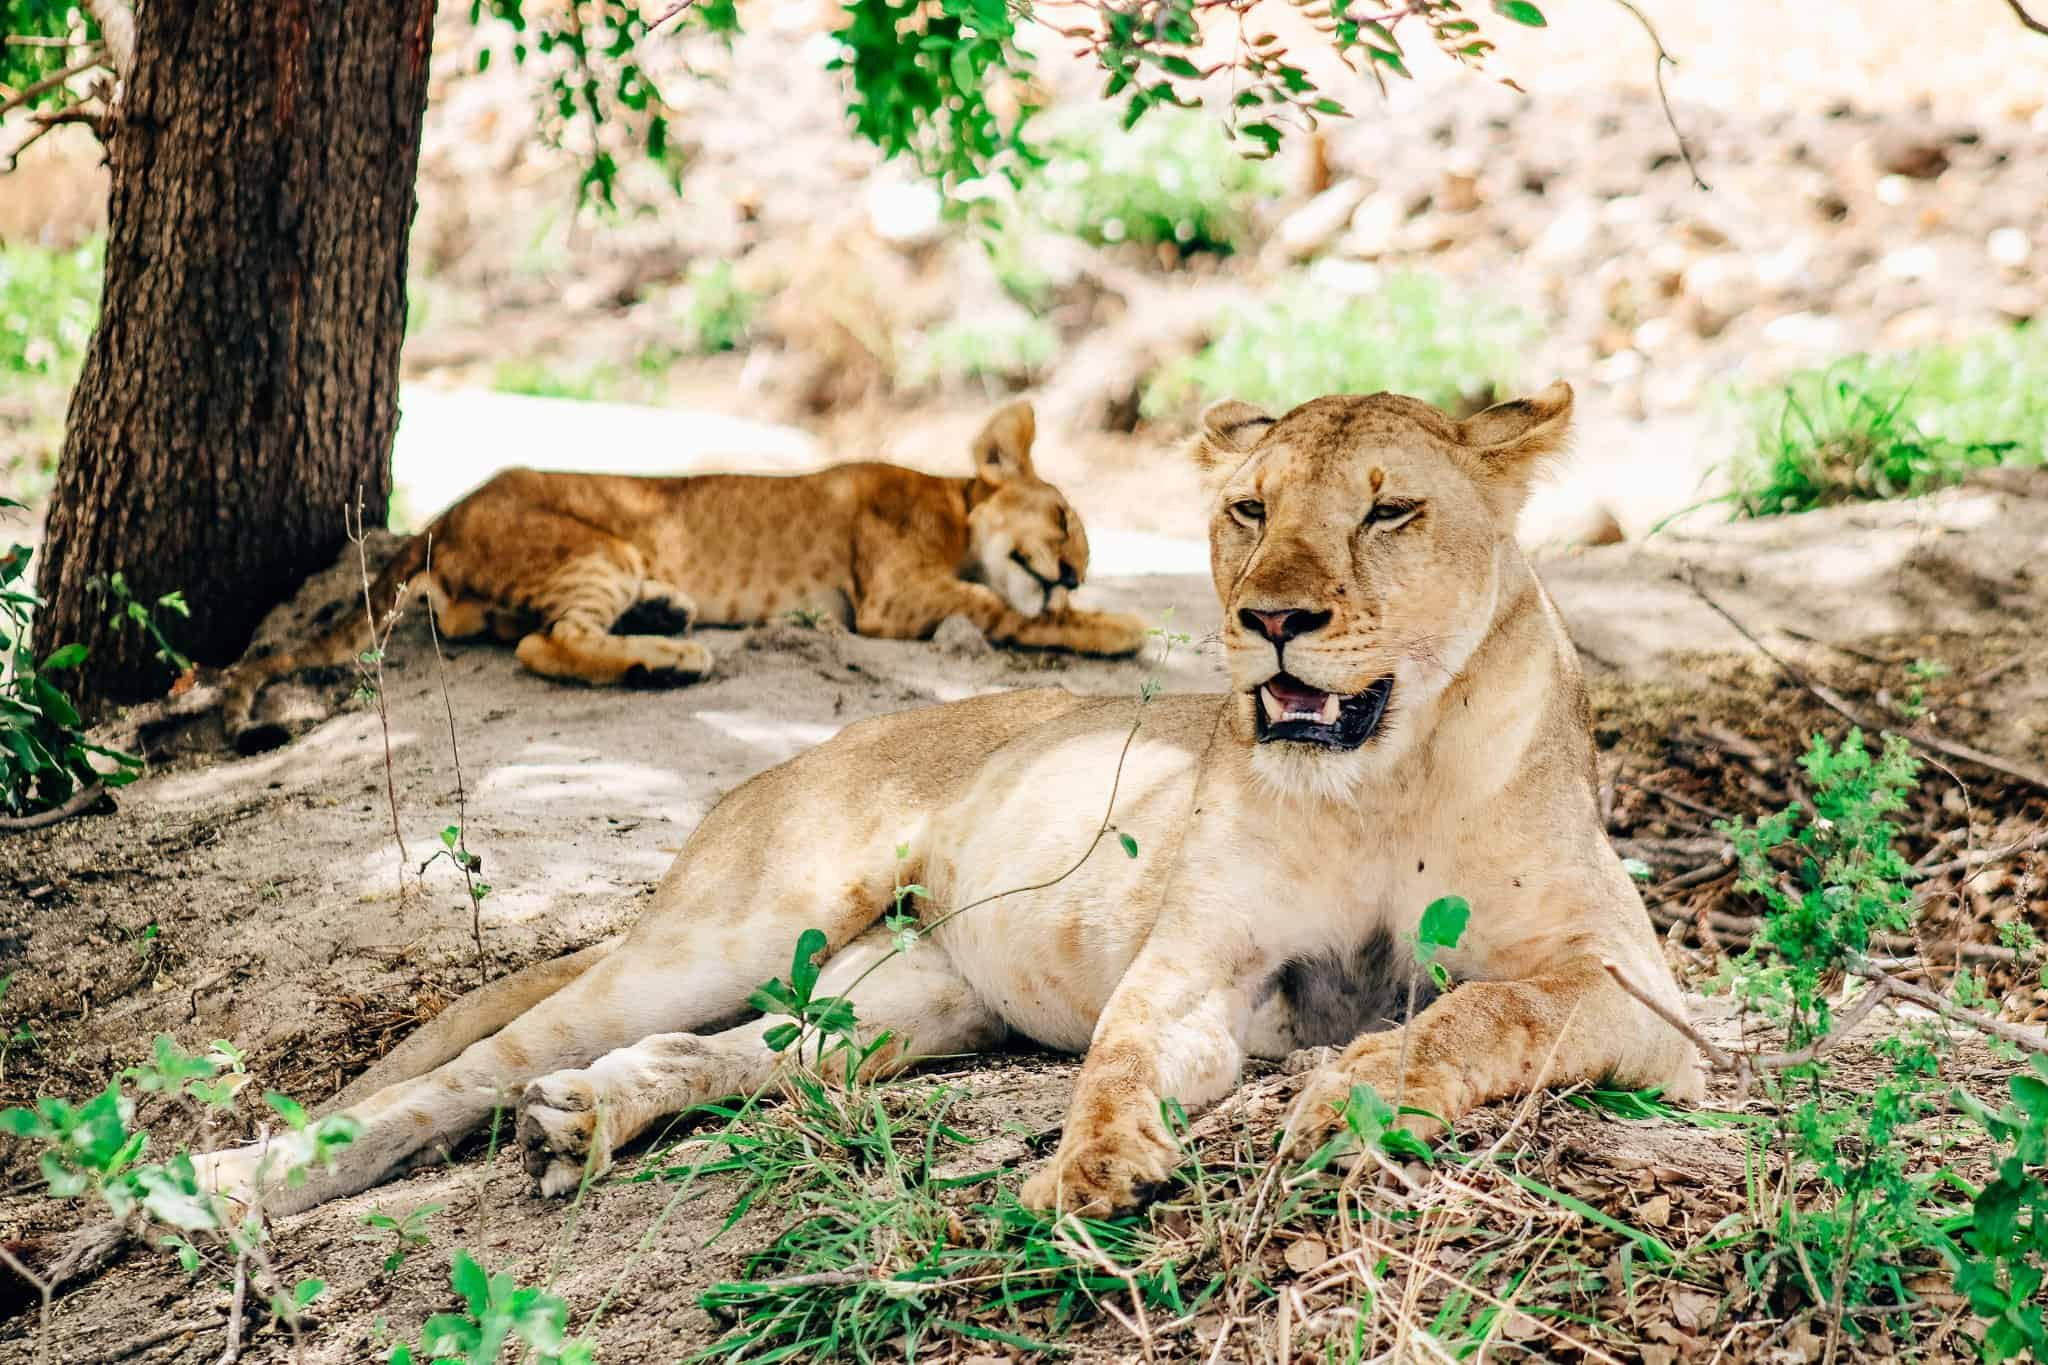 Family of Lions on African Safari Drive in the Selous Game Reserve